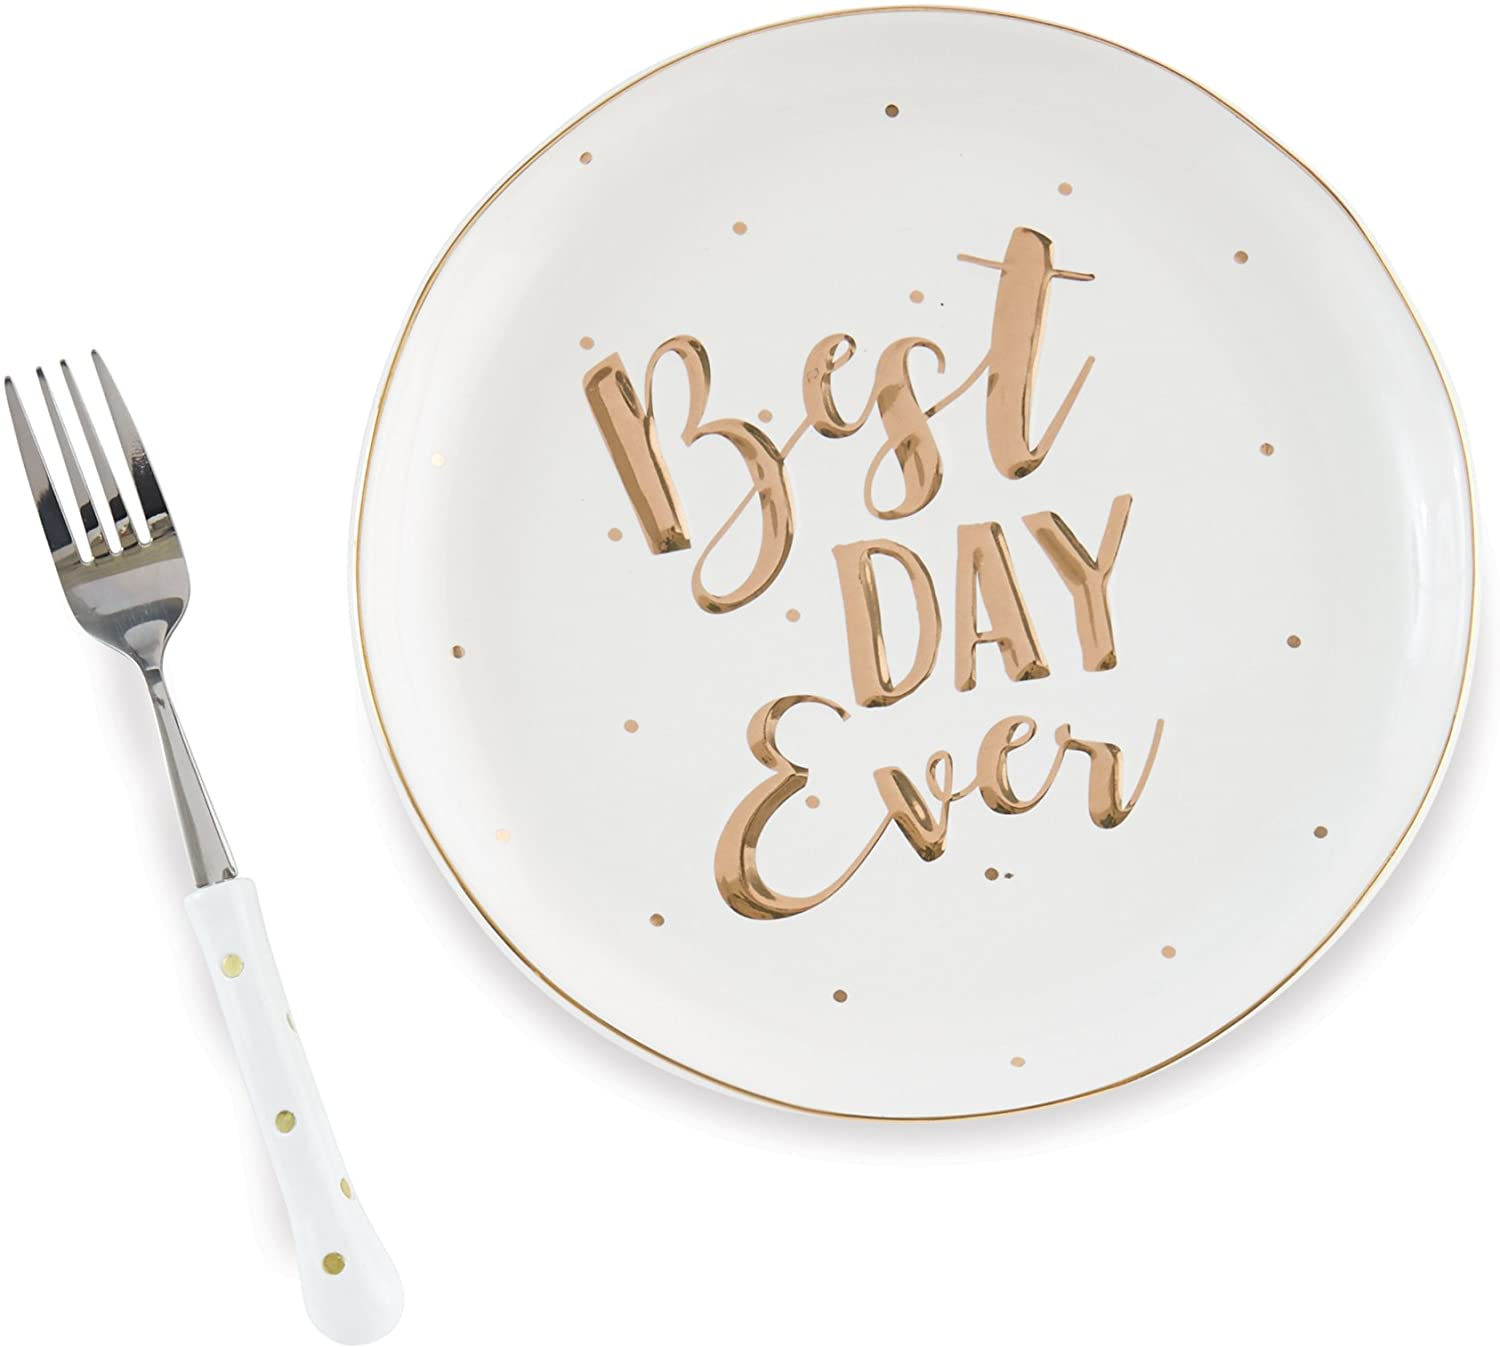 "alt=""Stoneware dessert plate with gold rim, raised gold mini dots and Best Day Ever scripted sentiment"""